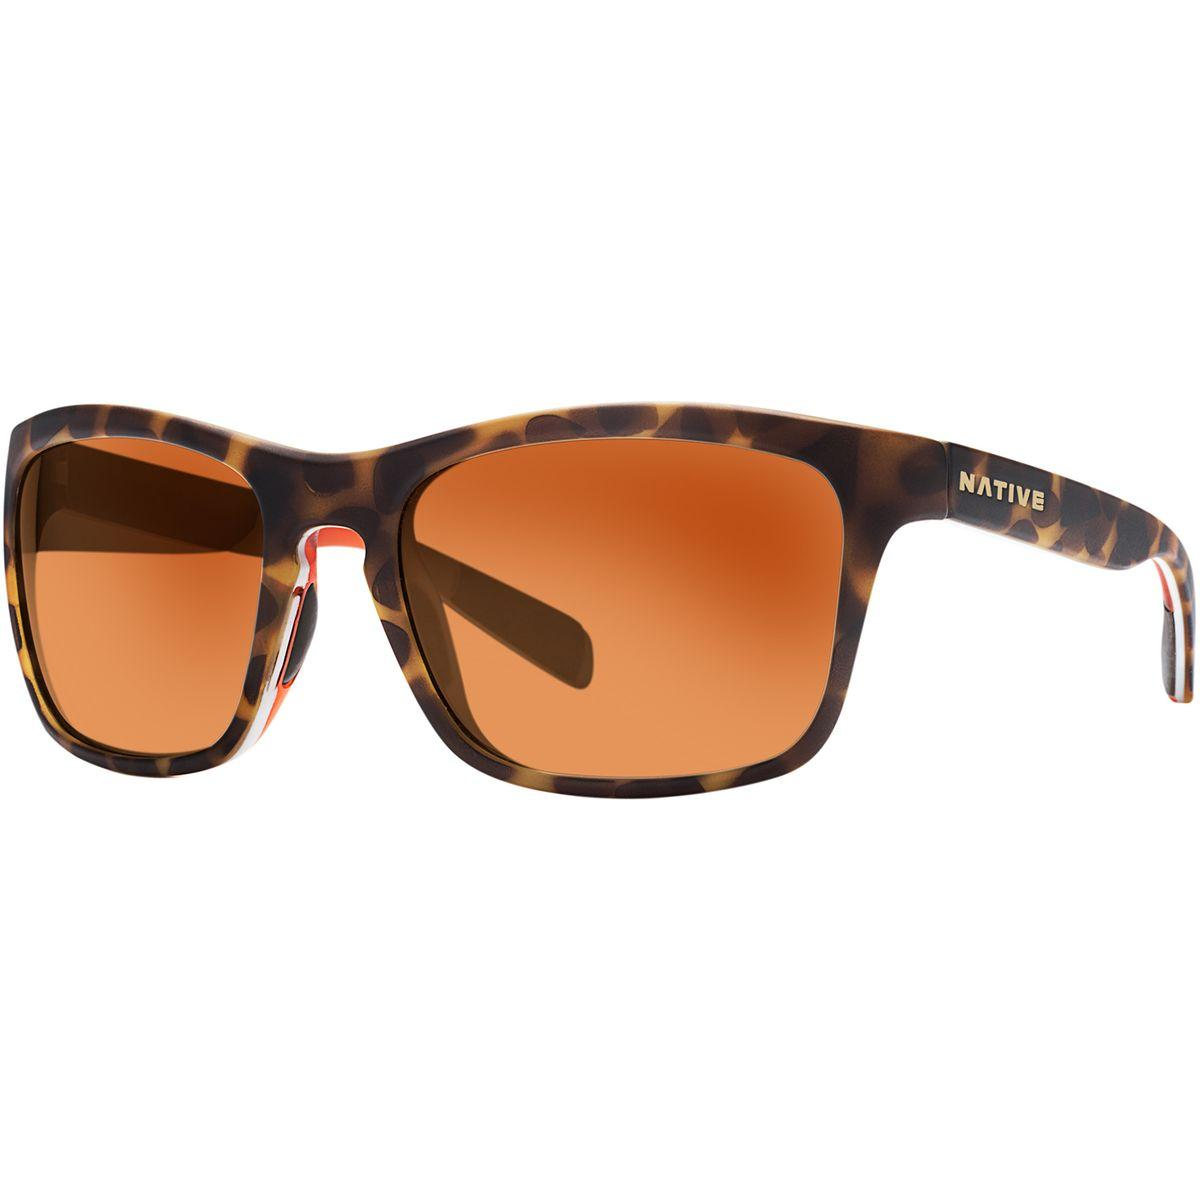 f5a5990d64d https   www.lyst.com accessories ray-ban-new-wayfarer-sunglasses ...